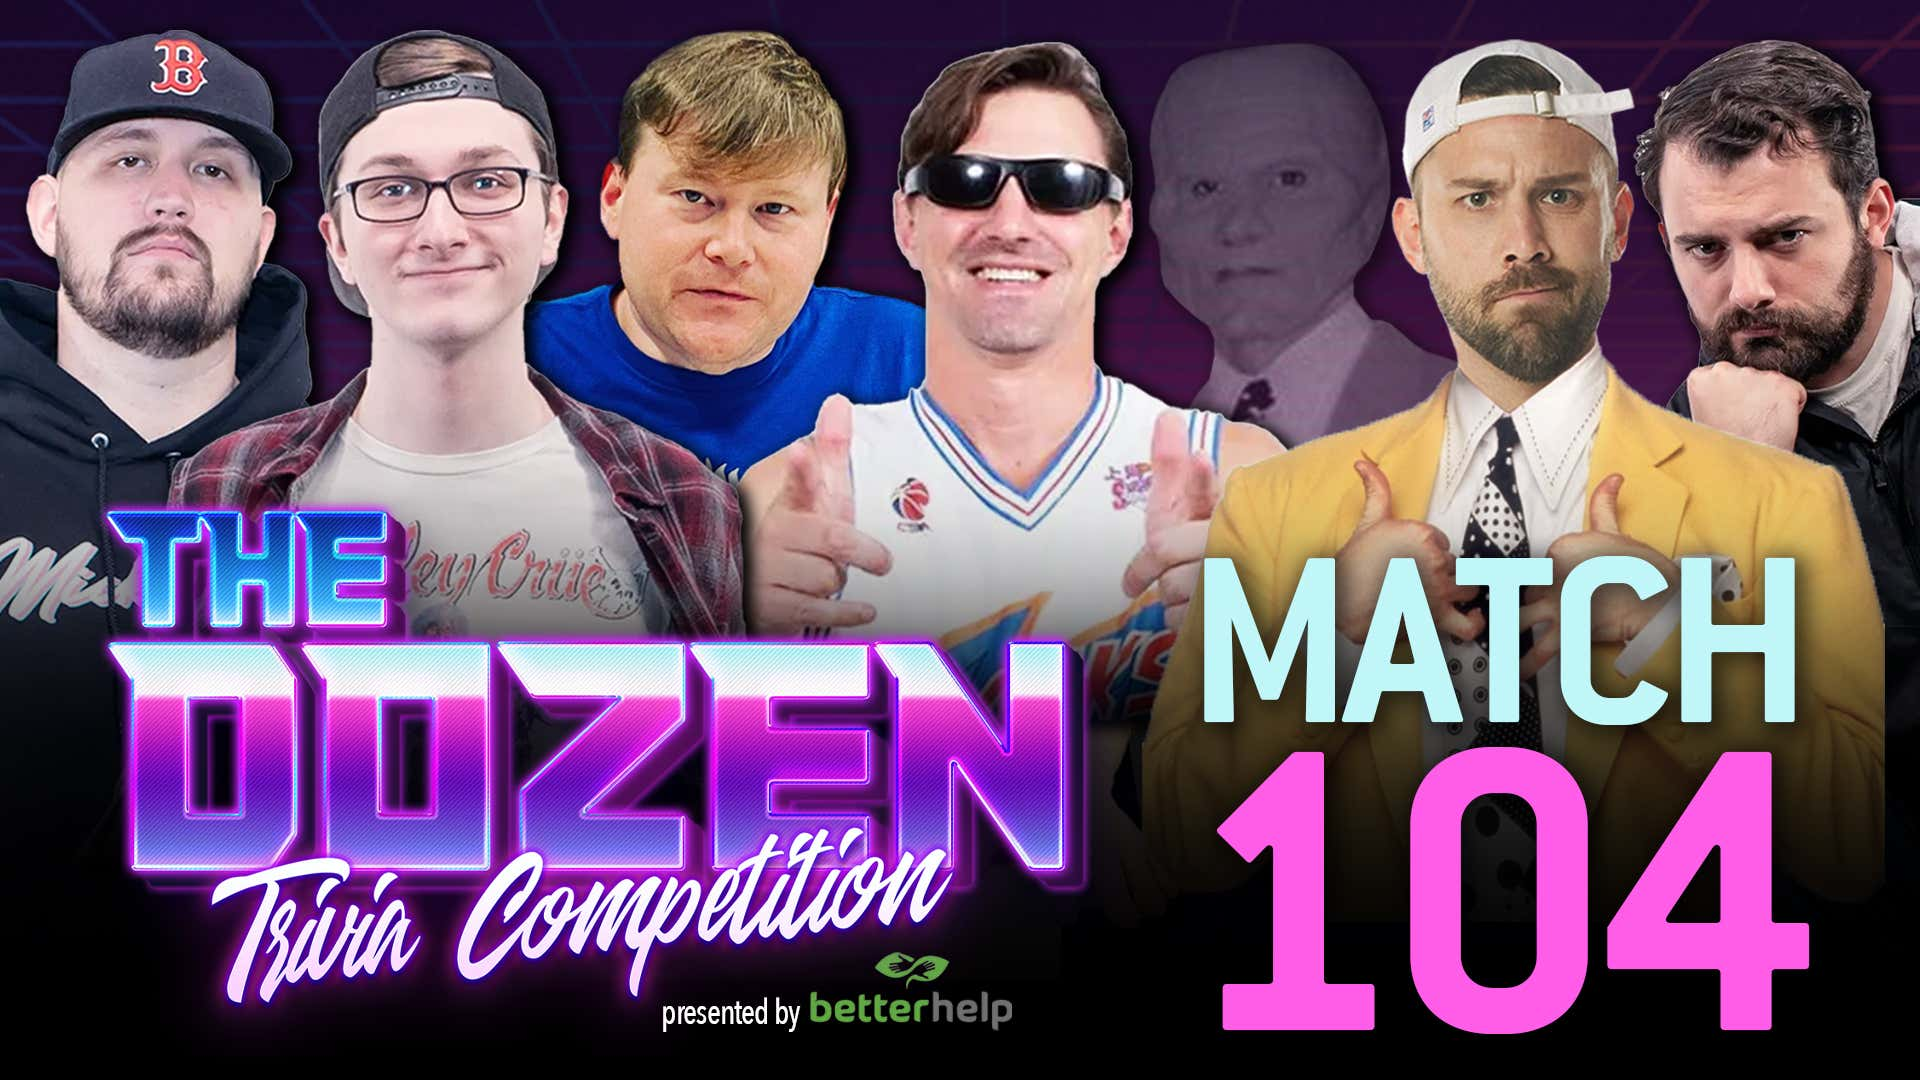 The Dozen: Trivia Competition pres. by BetterHelp - Coley, Robbie Fox, Ben Mintz vs. KenJac, Mark Titus, Donnie